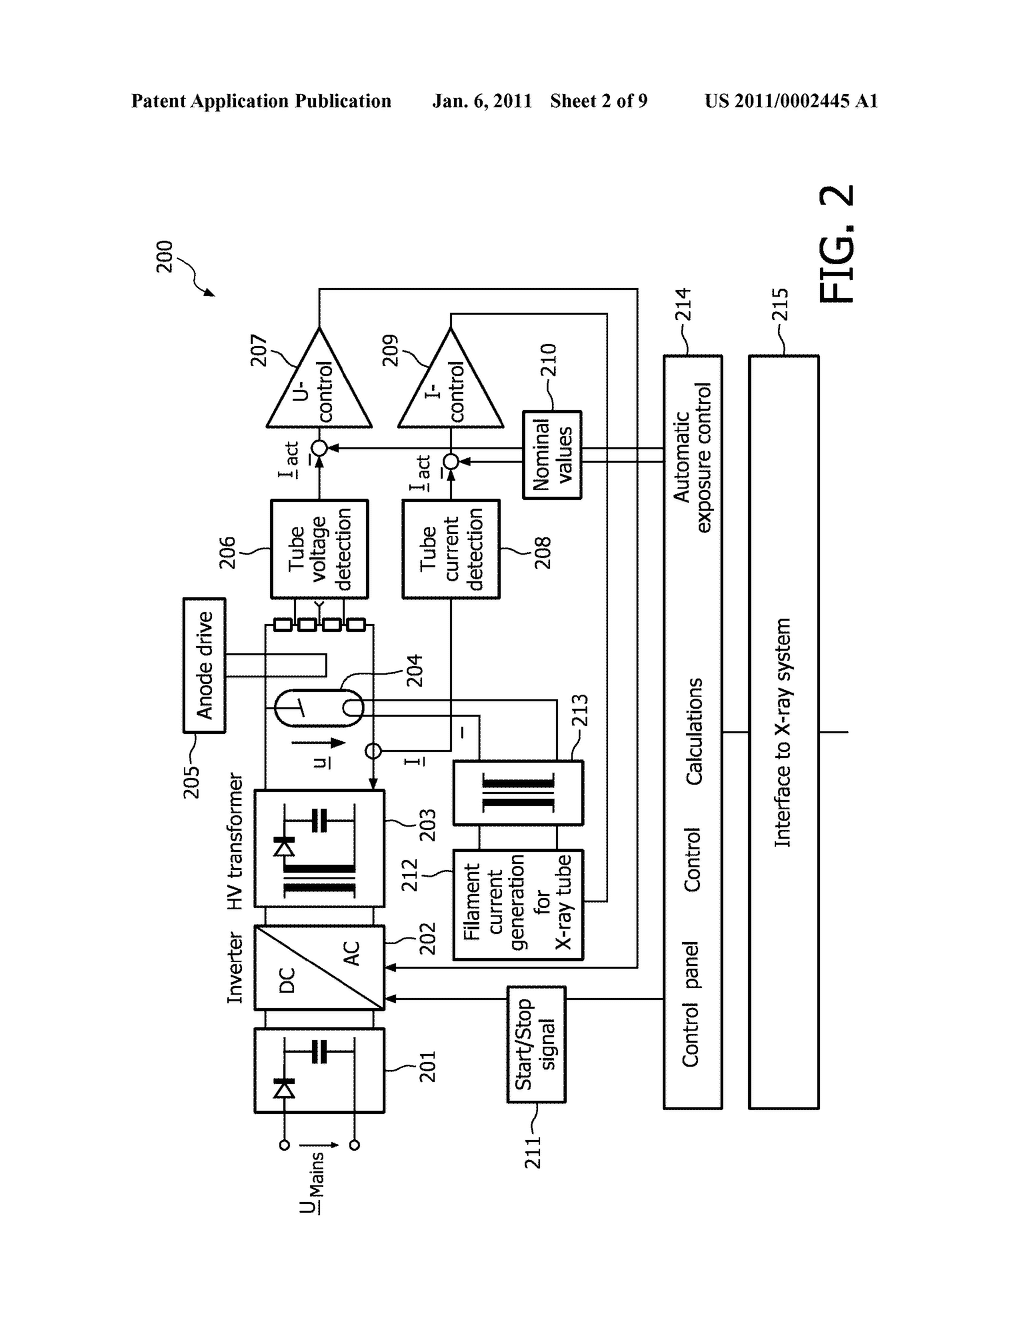 Dc Ac Power Inverter Control Unit Of A Resonant Converter Electric Generator Diagram Design Electrical Circuit In Particular For Use High Voltage Circuitry